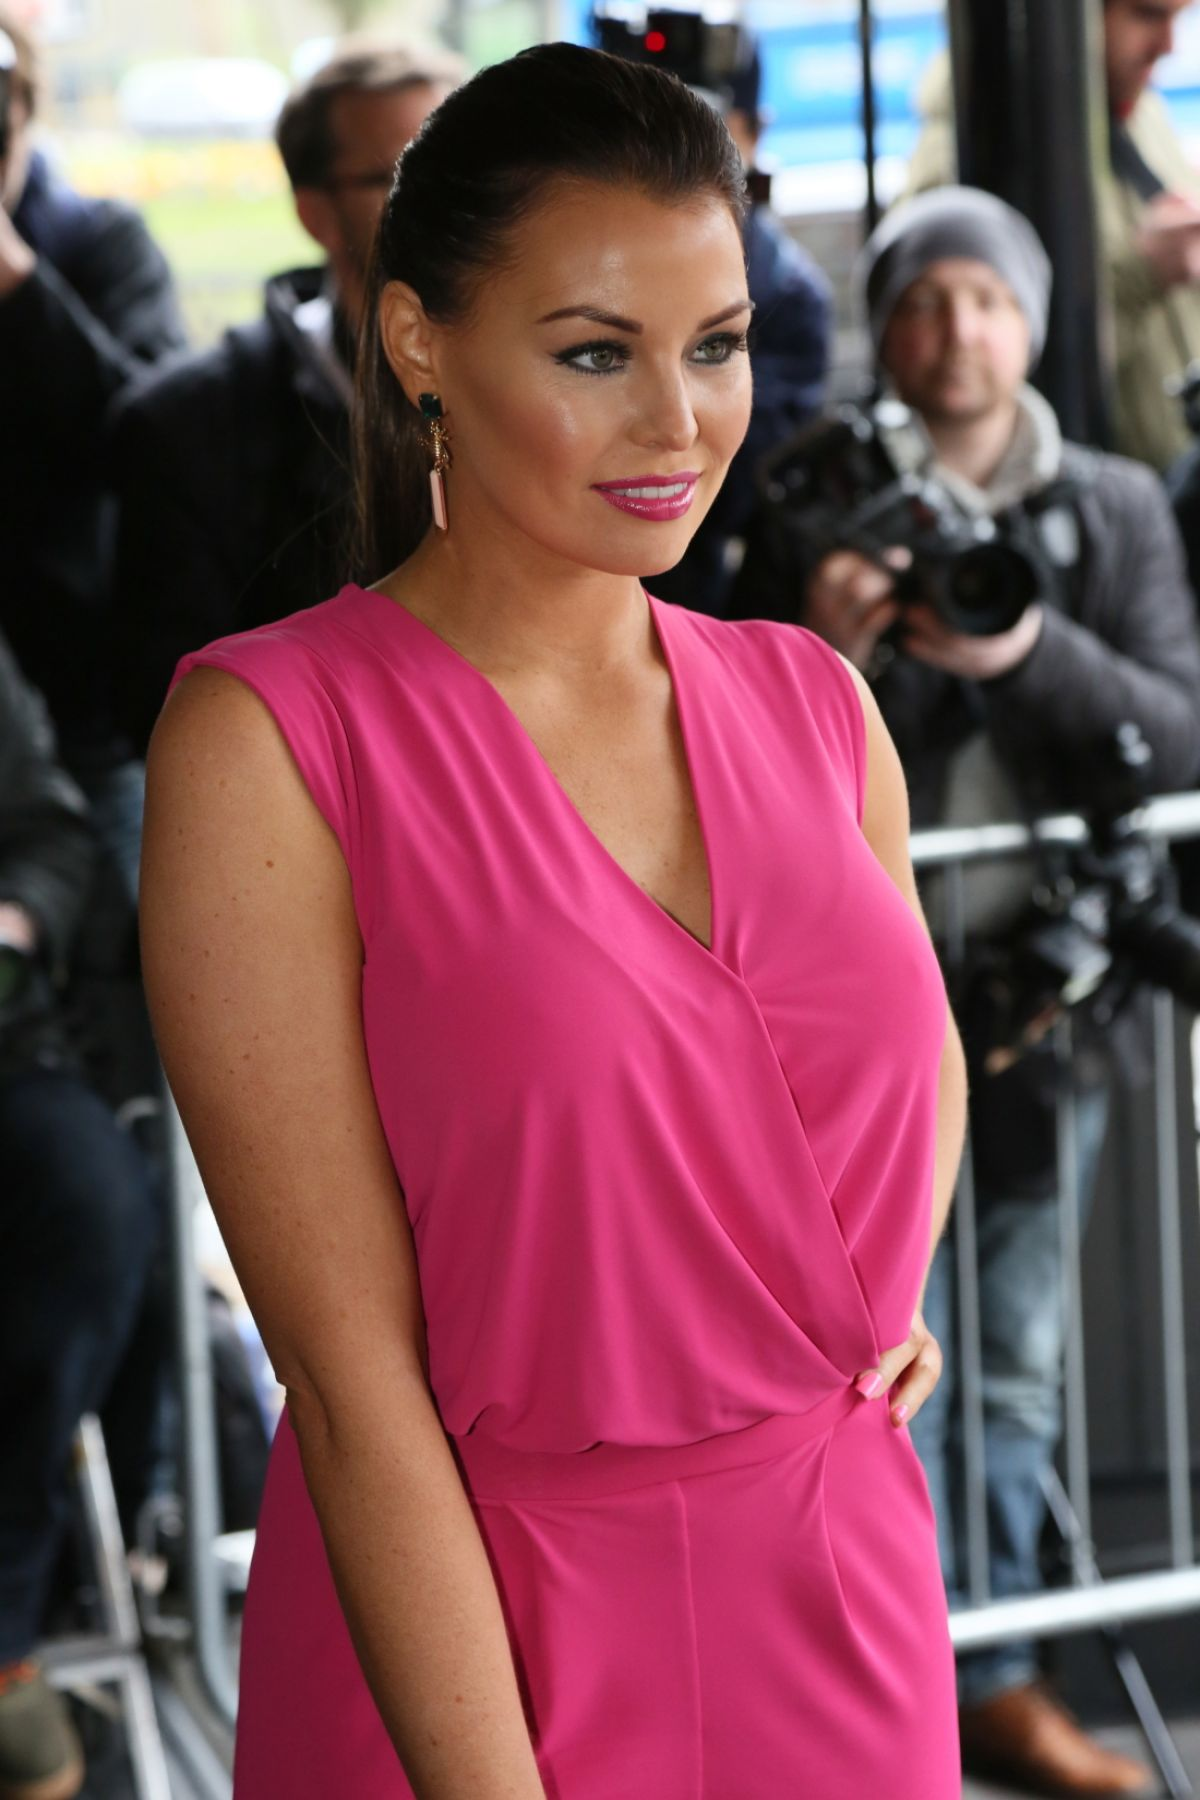 JESSICA WRIGHT at TRIC Awards 2014 in London